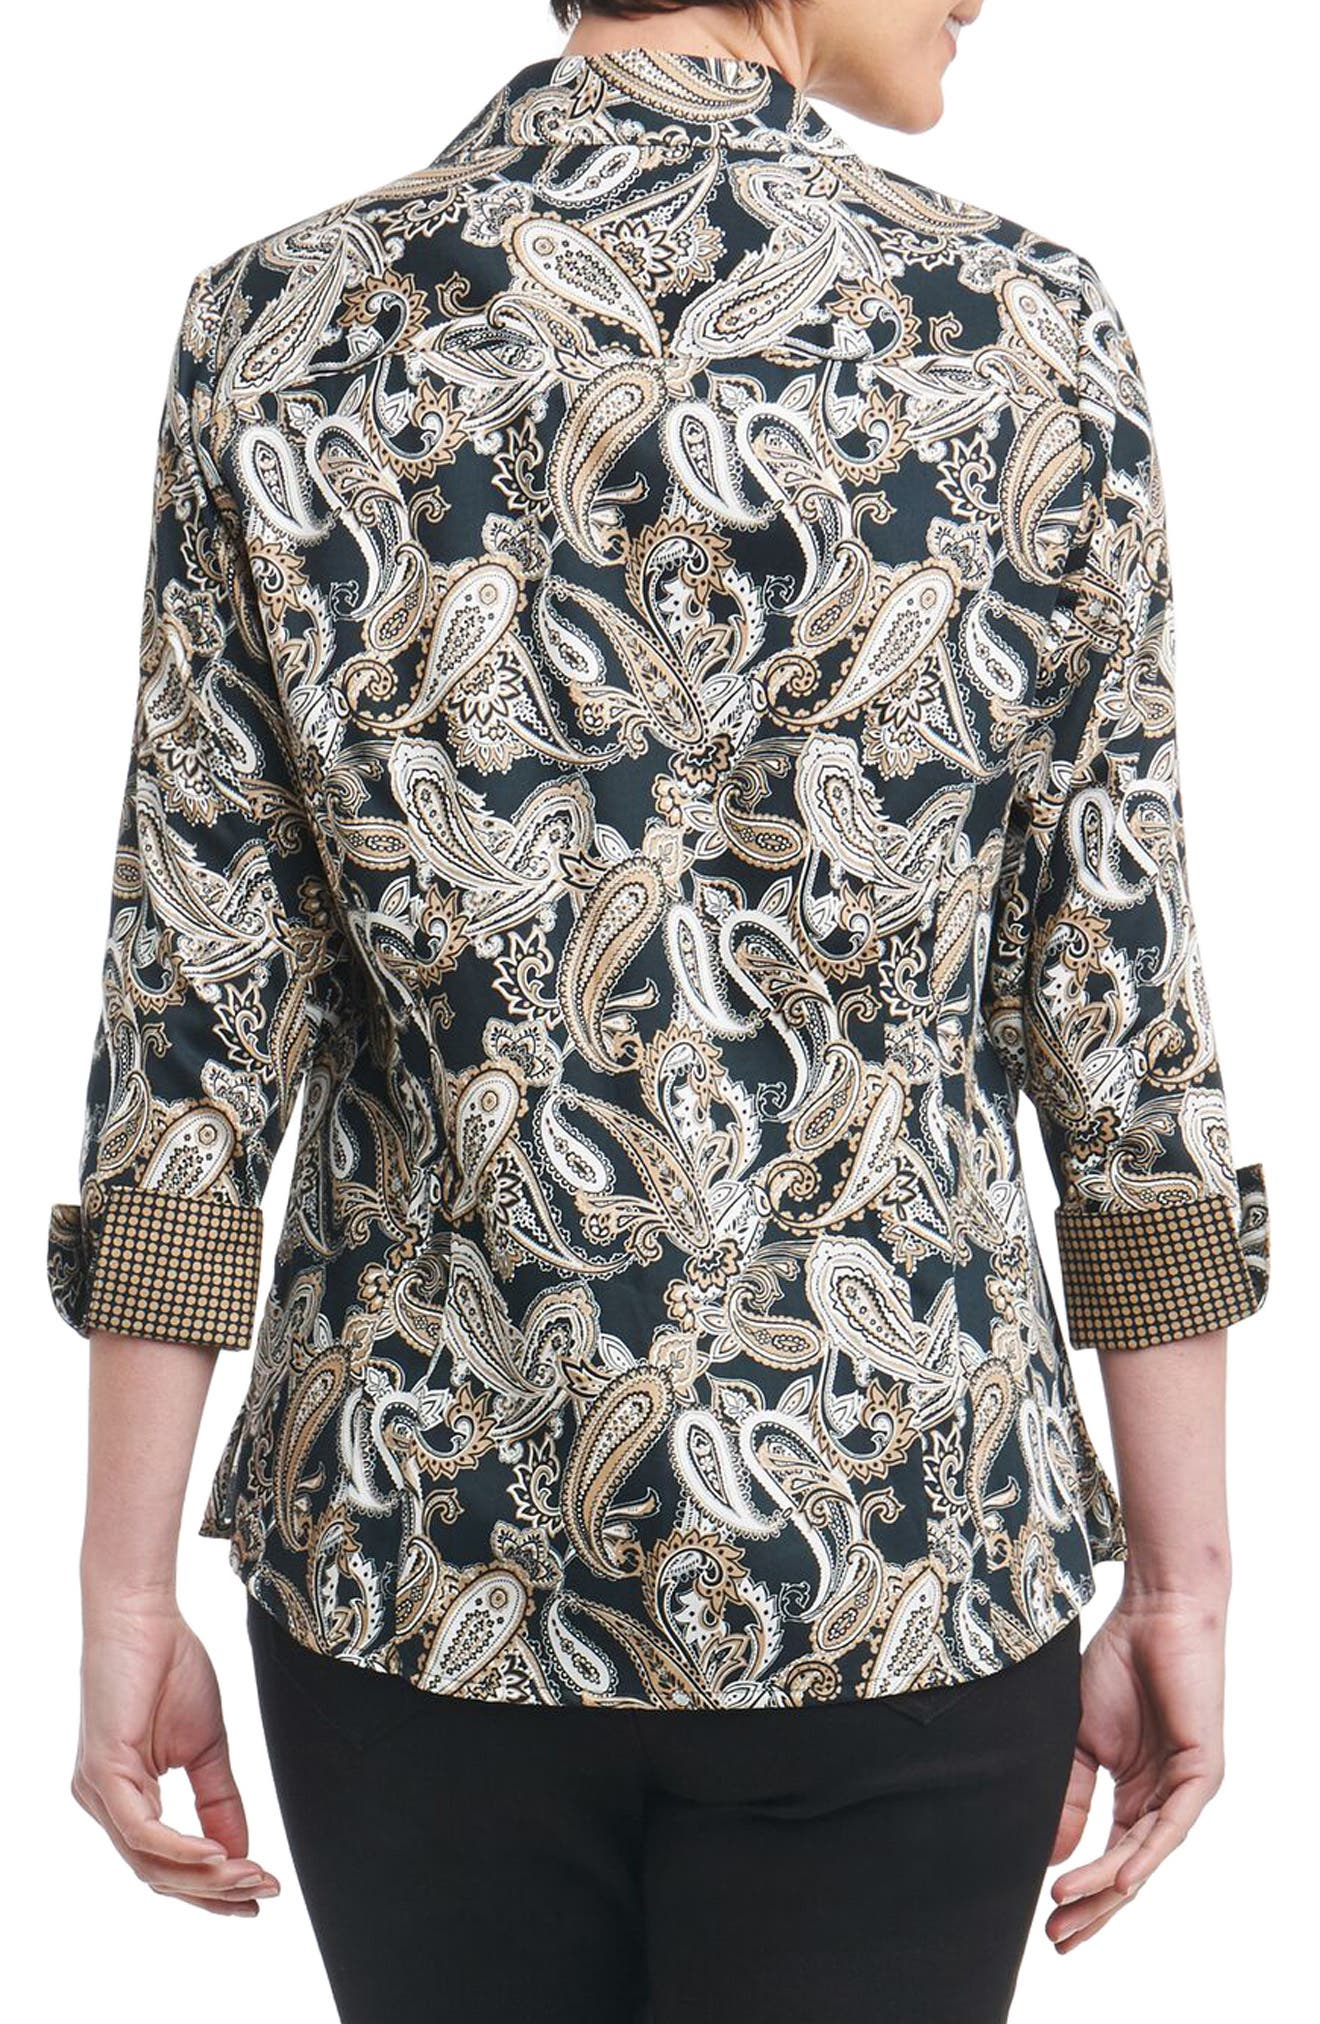 Taylor Heritage Paisley Wrinkle Free Shirt,                             Alternate thumbnail 2, color,                             Neutral